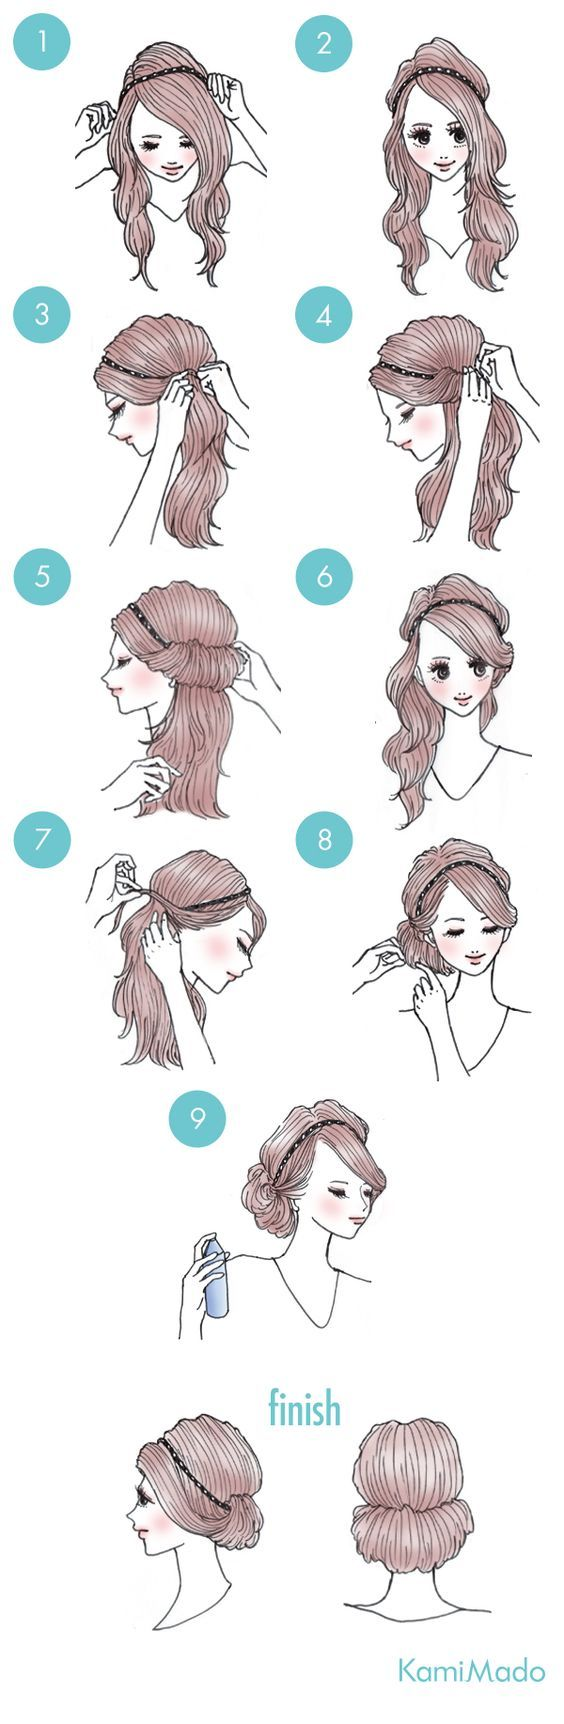 Pin by shahd on hair beauty | Pinterest | Hair and beauty